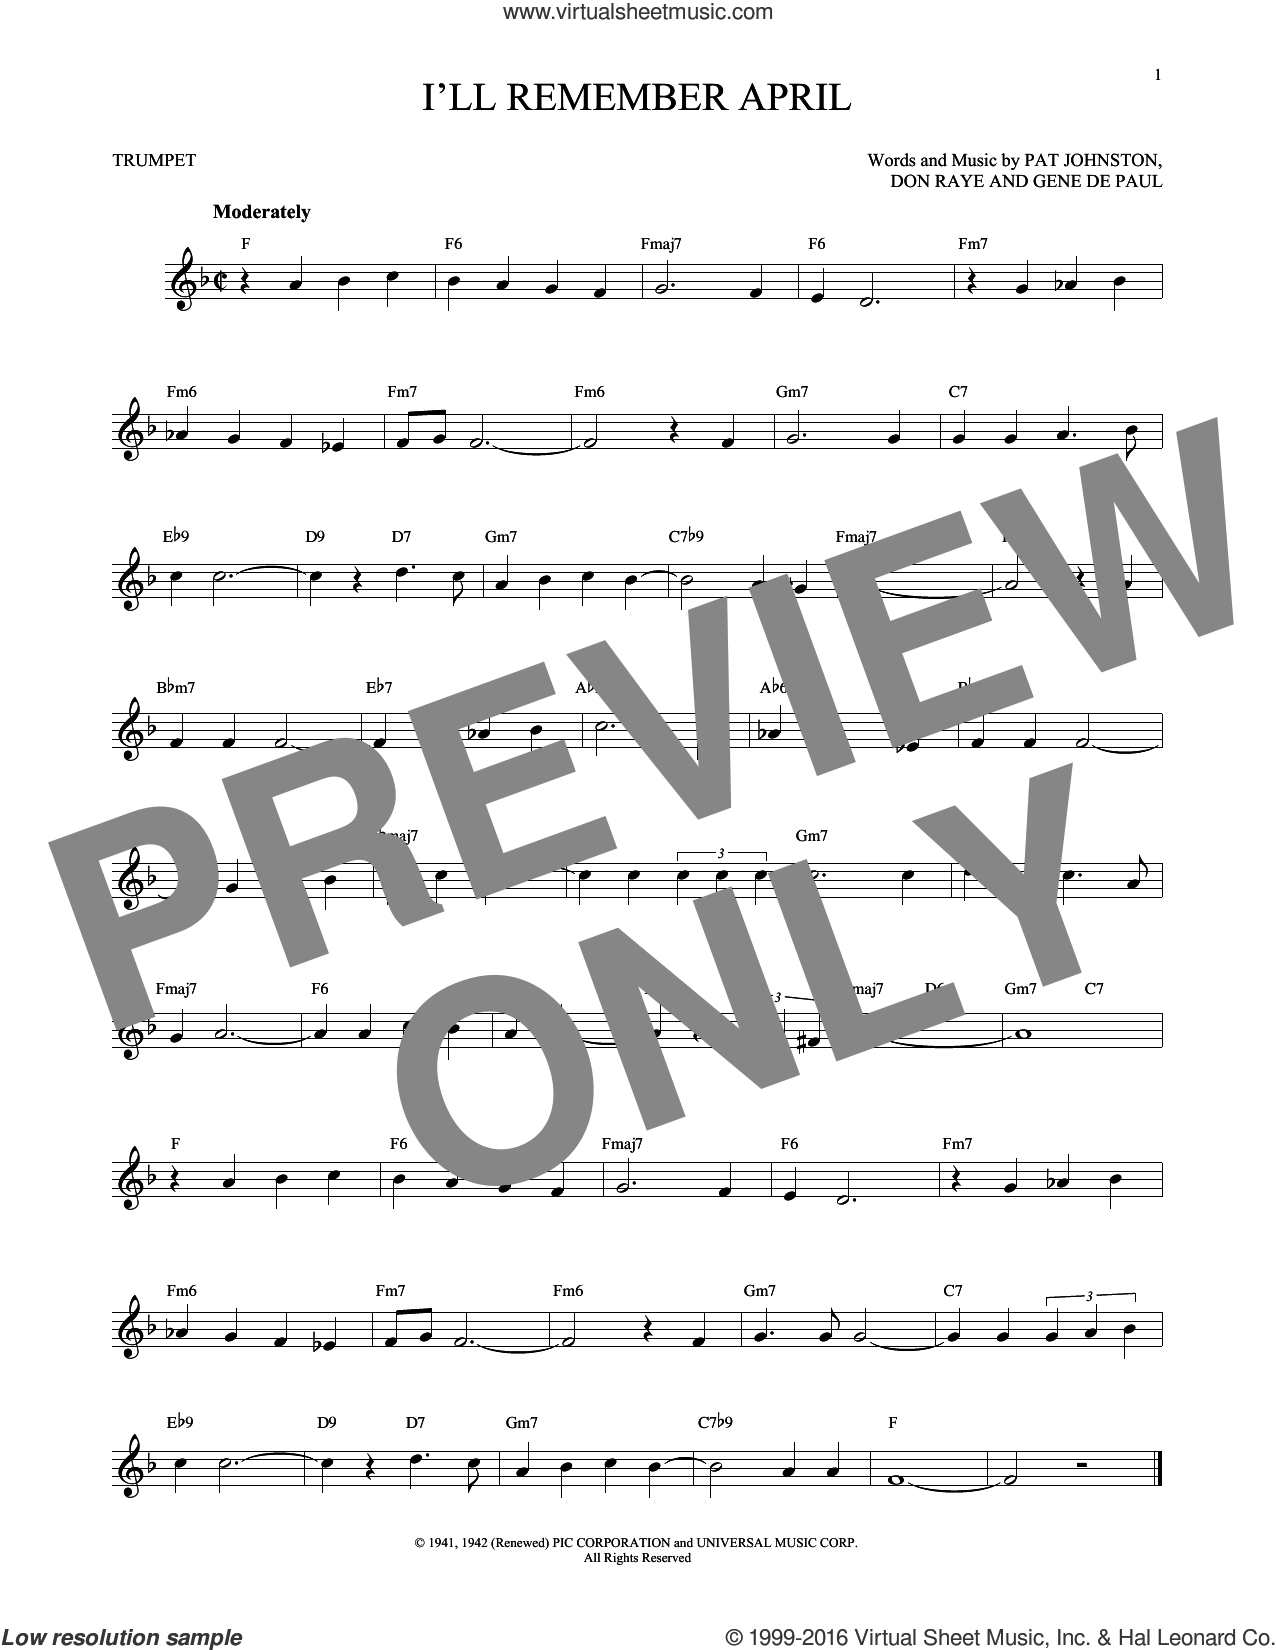 I'll Remember April sheet music for trumpet solo by Woody Herman & His Orchestra, Don Raye, Gene DePaul and Pat Johnston, intermediate skill level